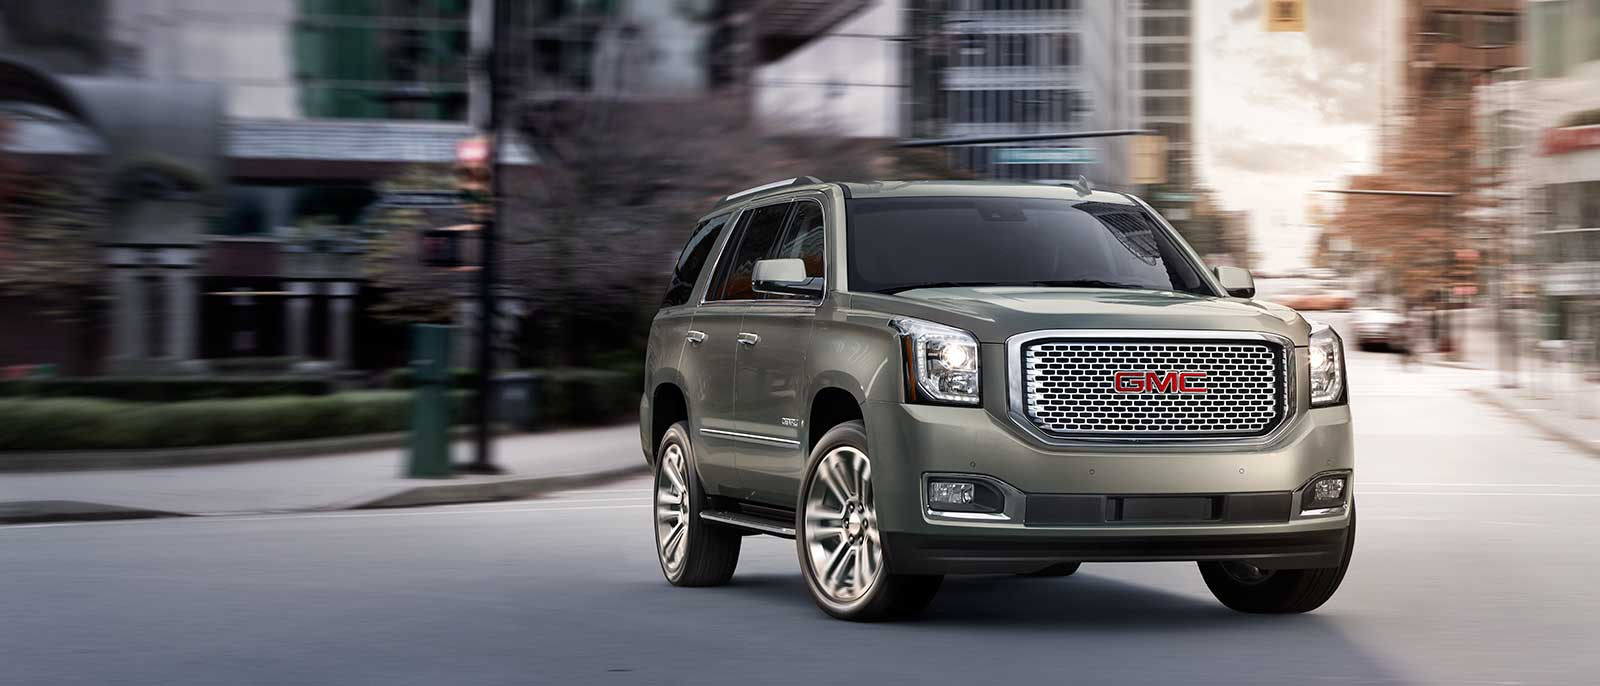 Take A Ride In The Powerful And Roomy 2017 Gmc Yukon Suv